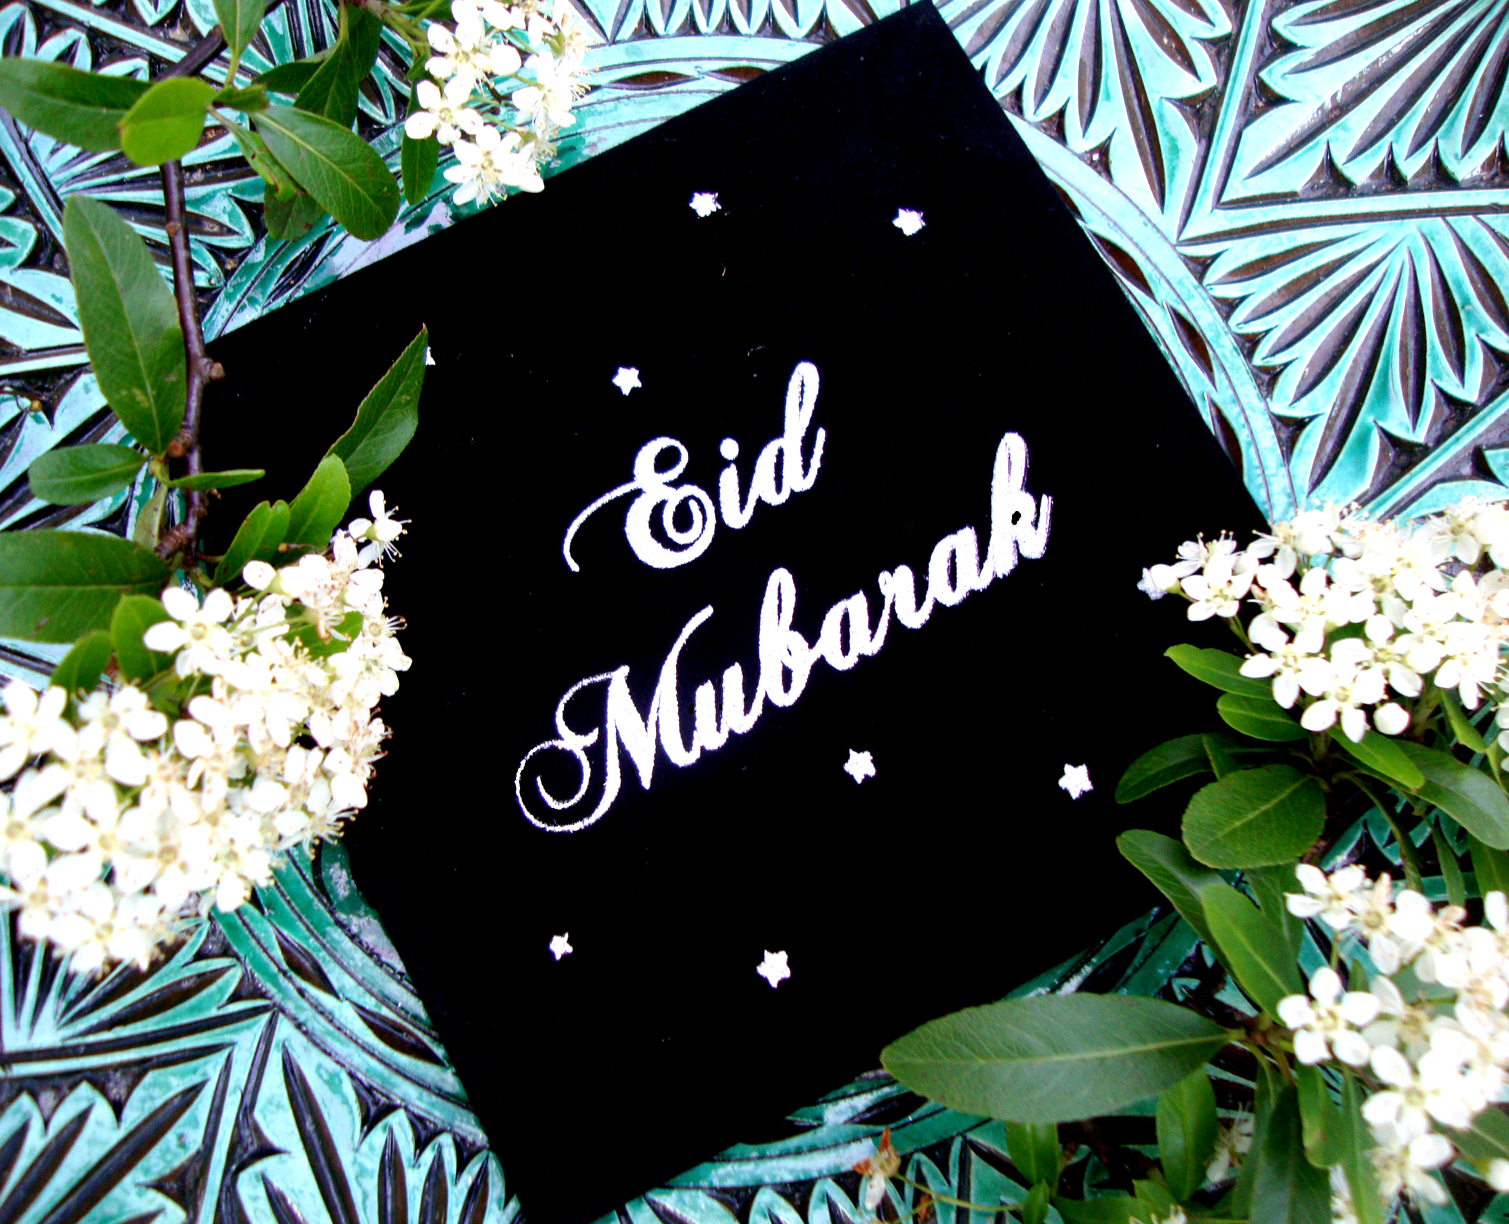 Hd widescreen backgrounds wallpapers eid cards eid greeting cards eid cards for free wallpapersg m4hsunfo